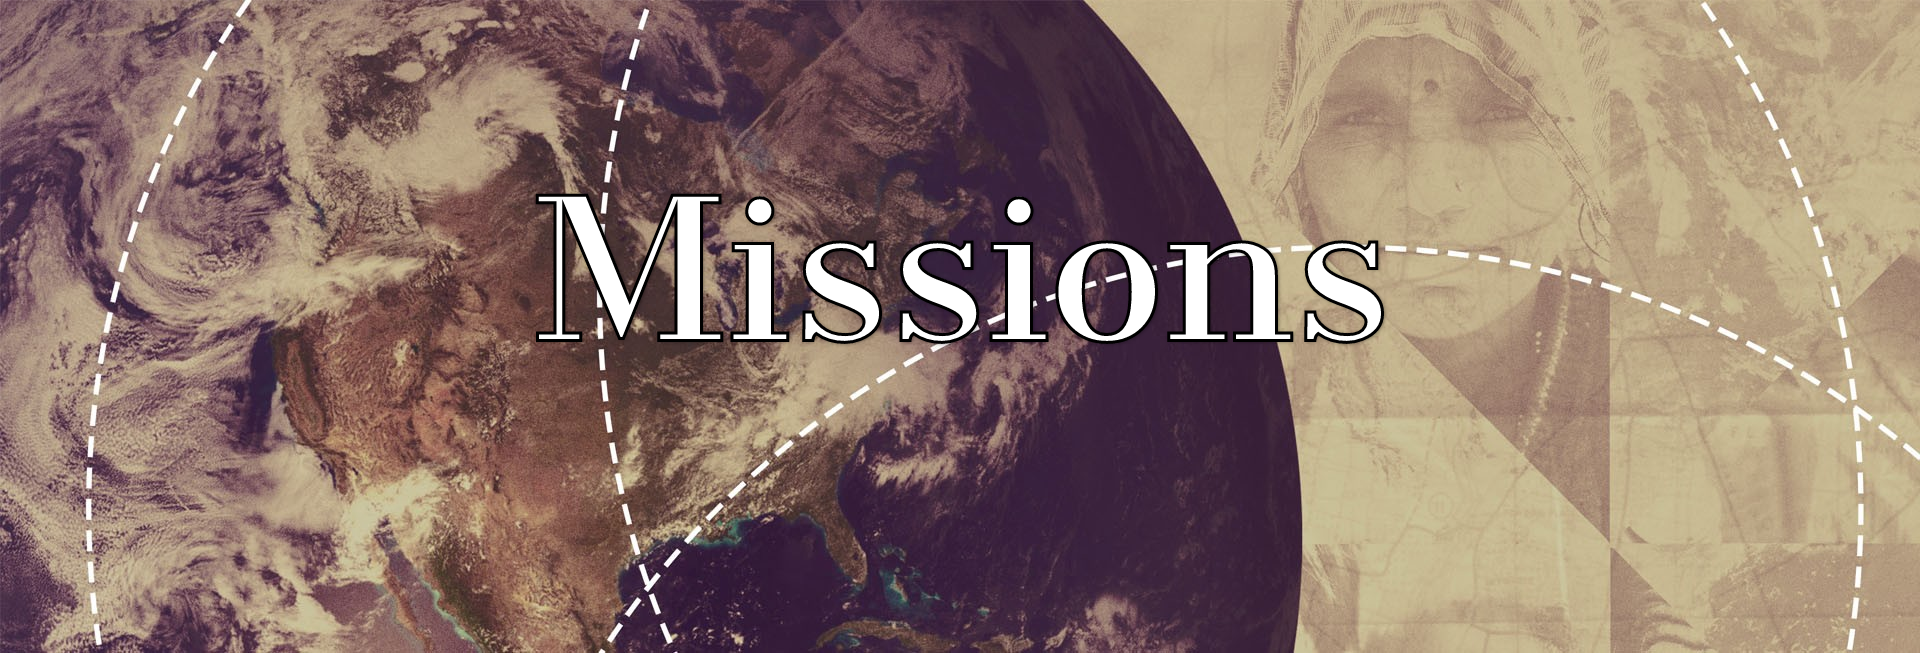 Preach the Gospel Missions Church Website Banner